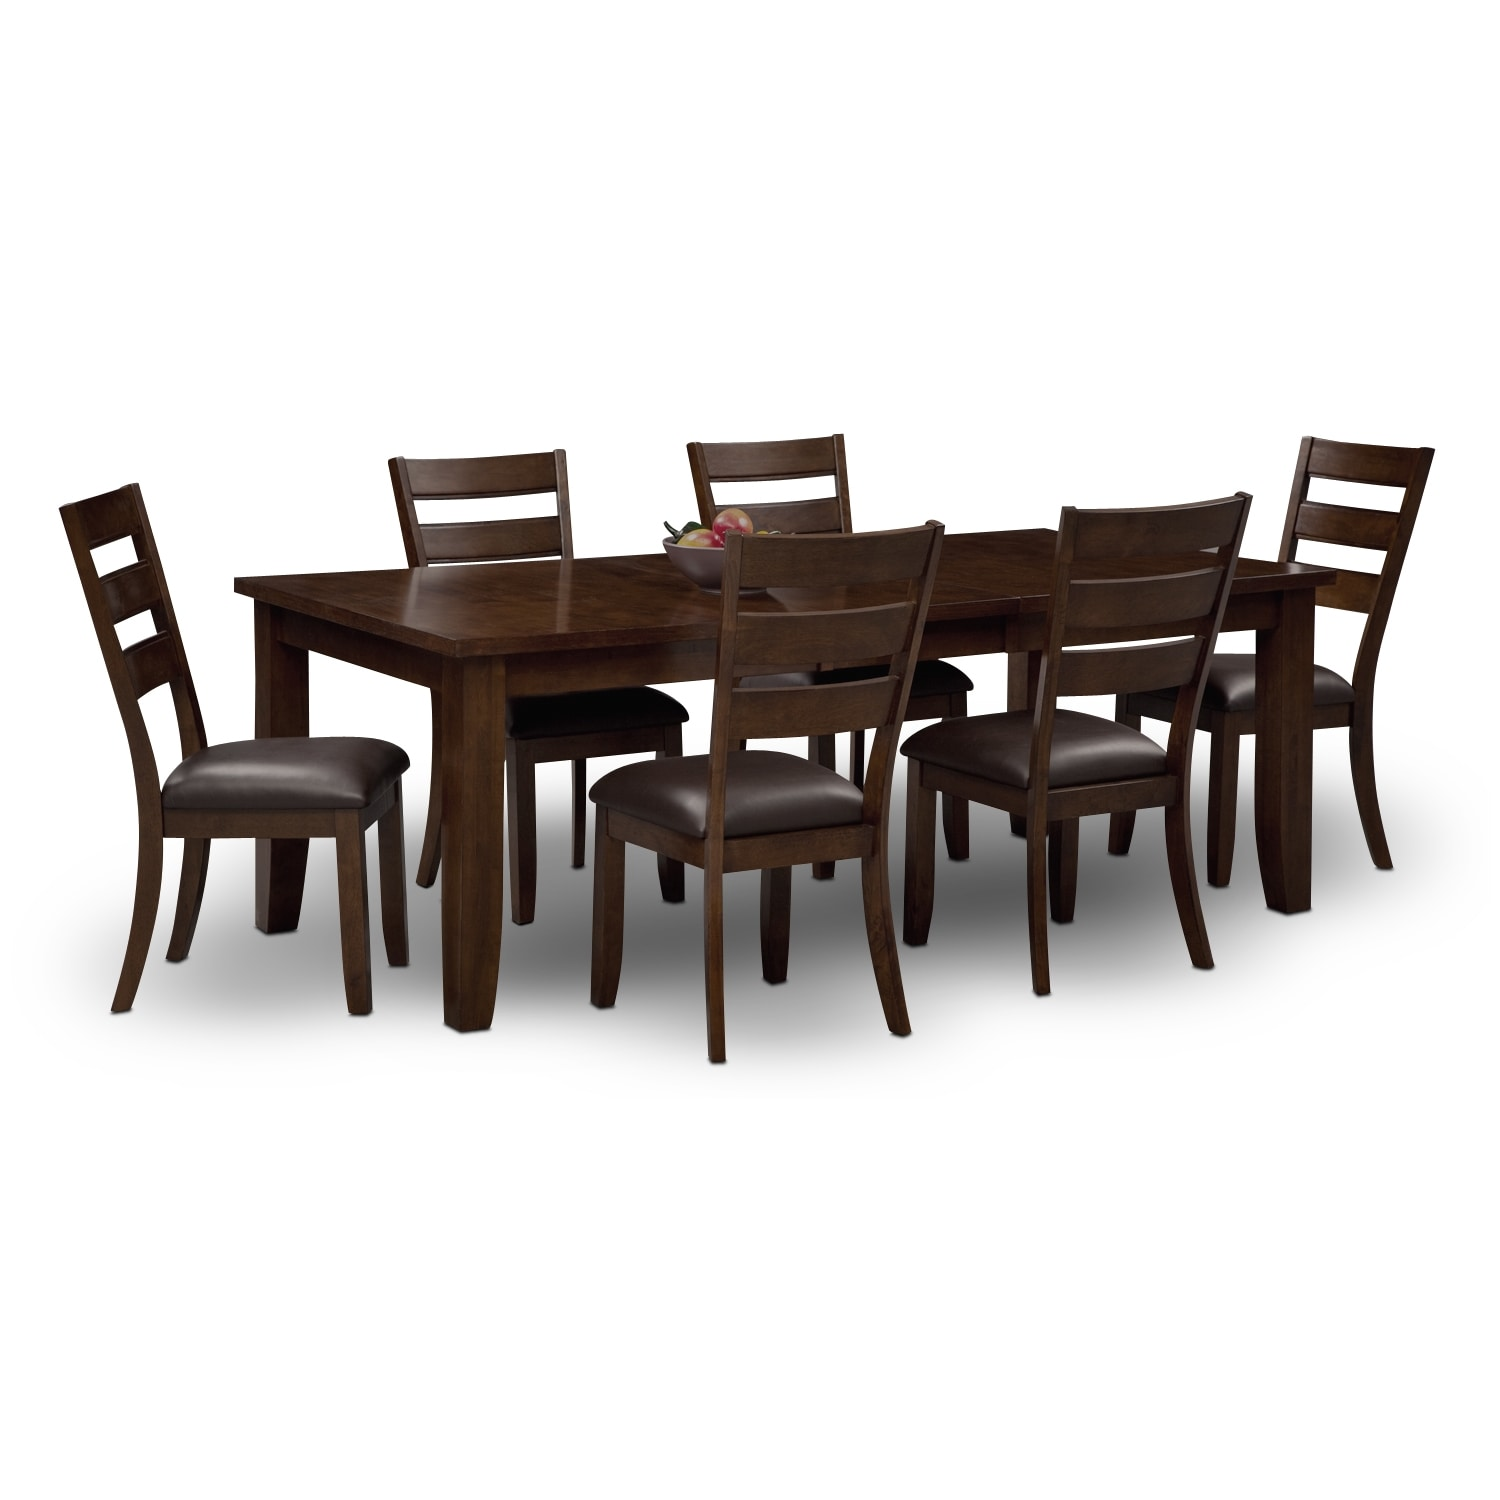 Abaco table and 6 chairs brown value city furniture for Dining room table and 6 chairs